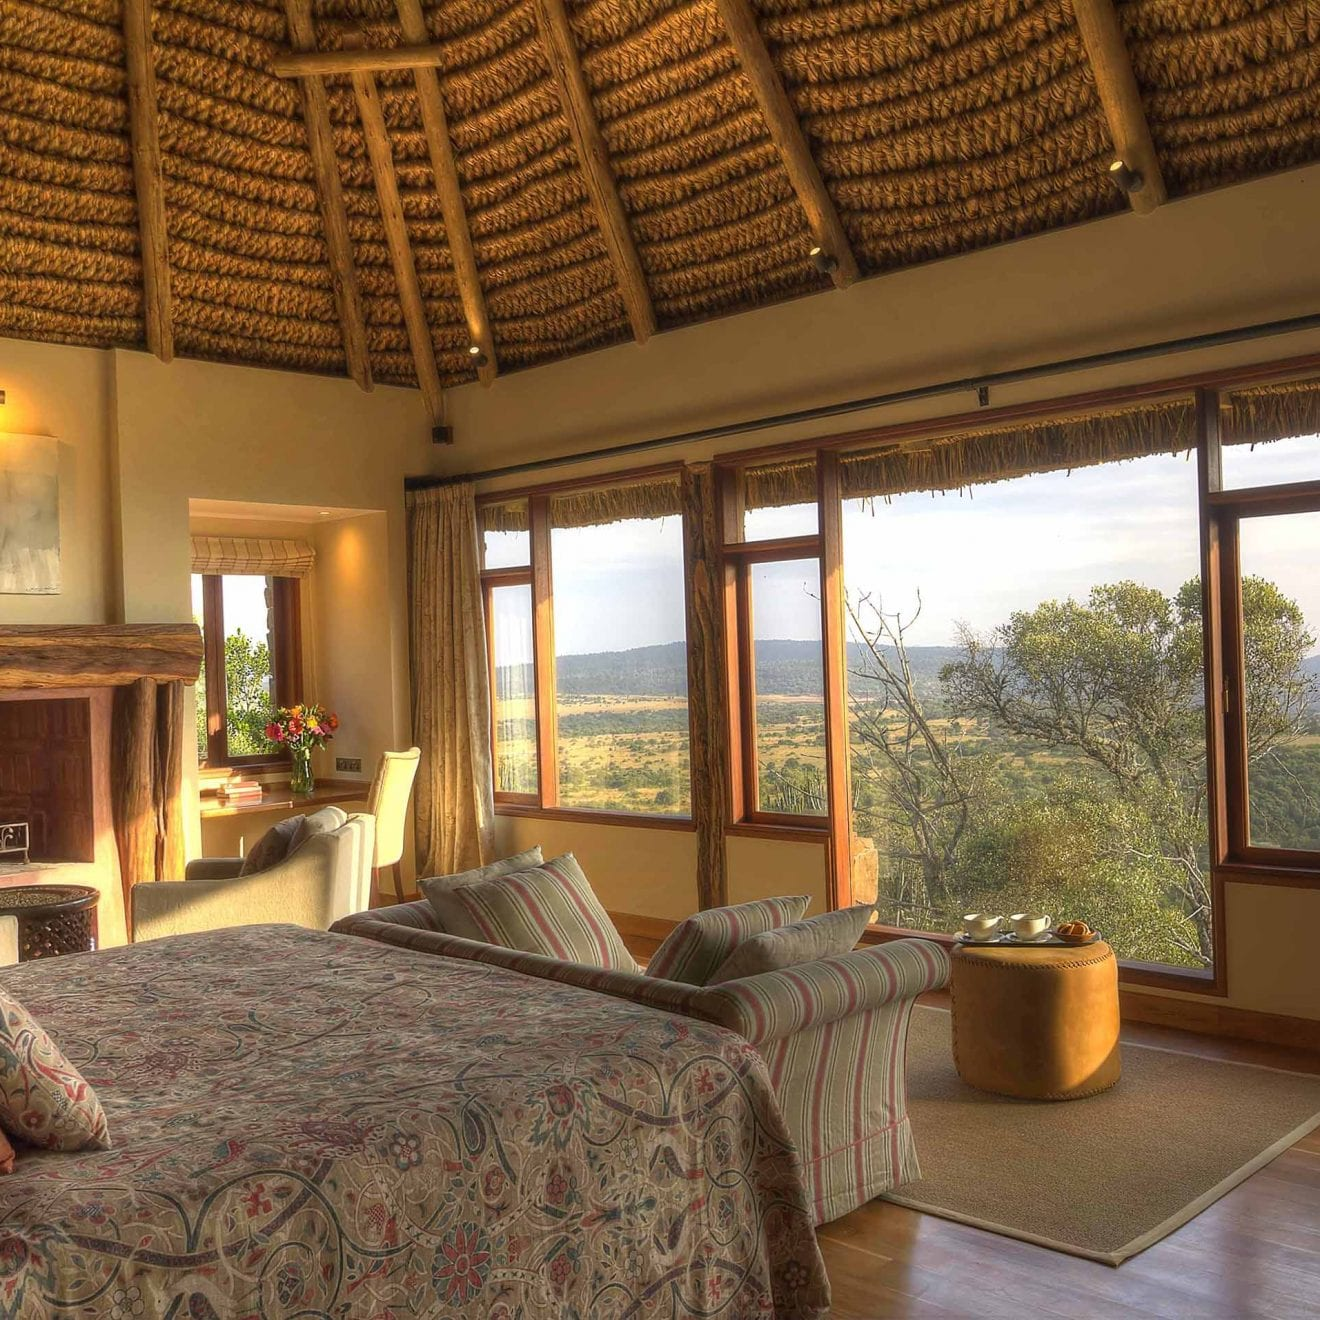 a bedroom at Laragai House with a large window overlooking the plains